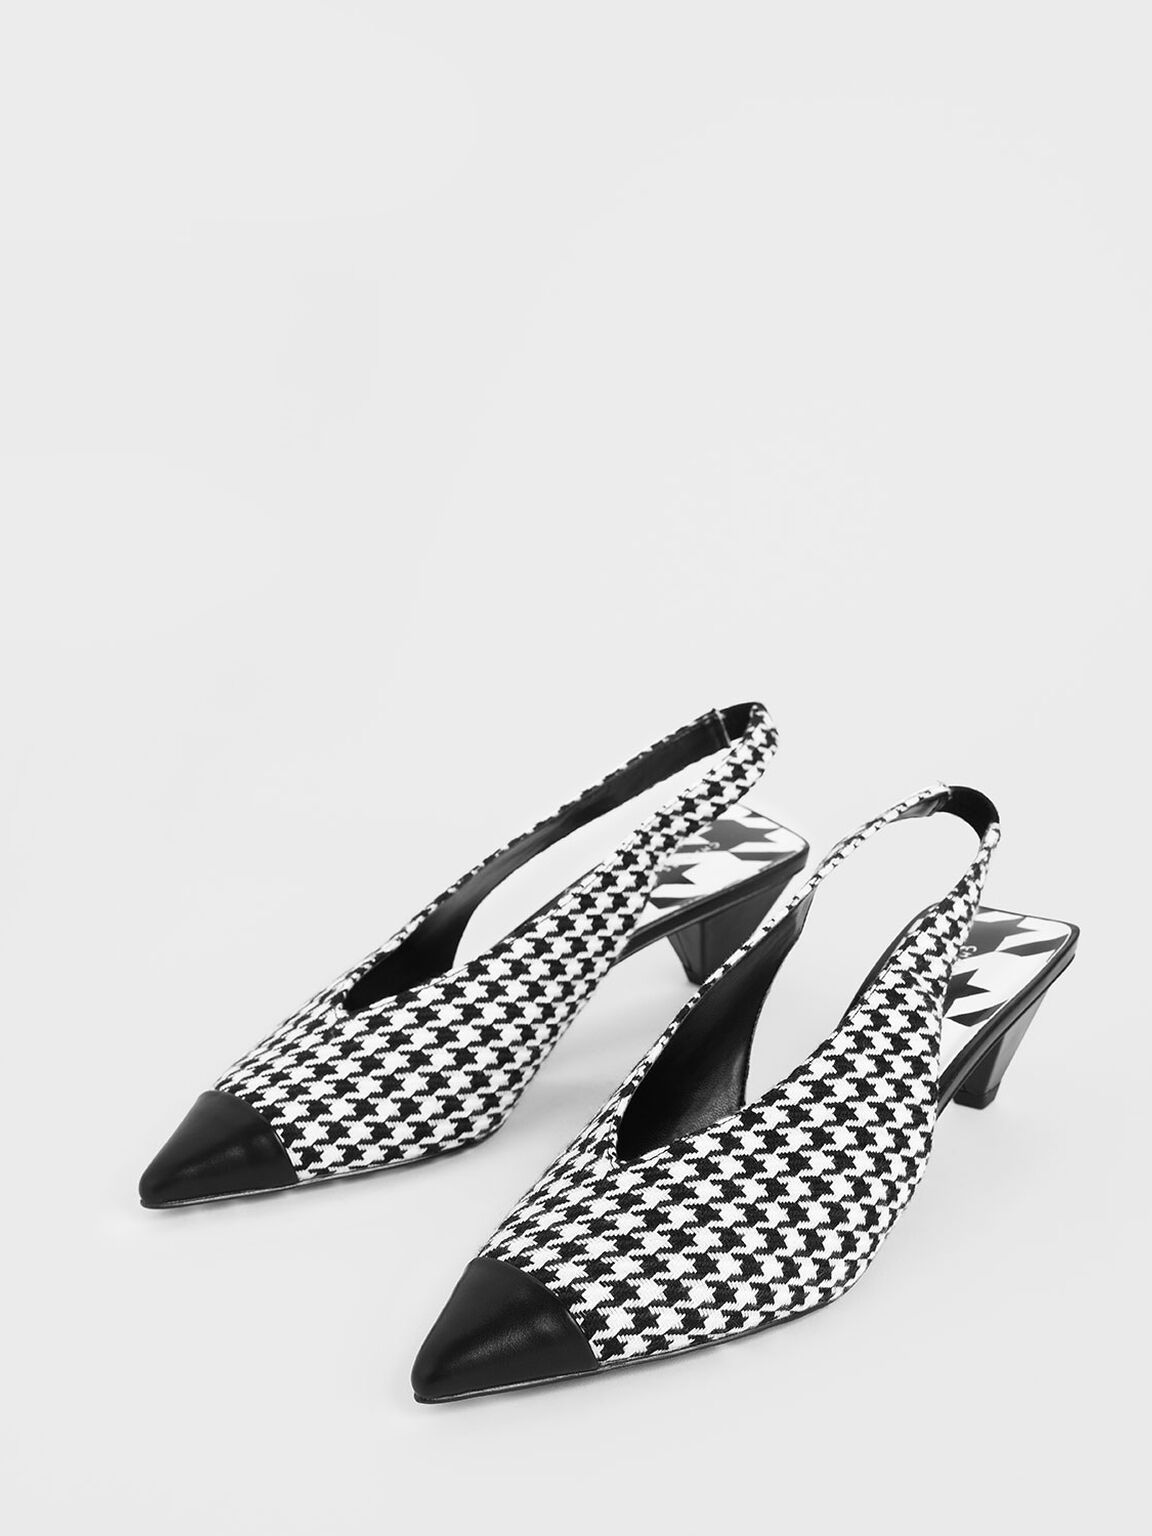 Houndstooth Print Woven Fabric Slingback Heels, Multi, hi-res